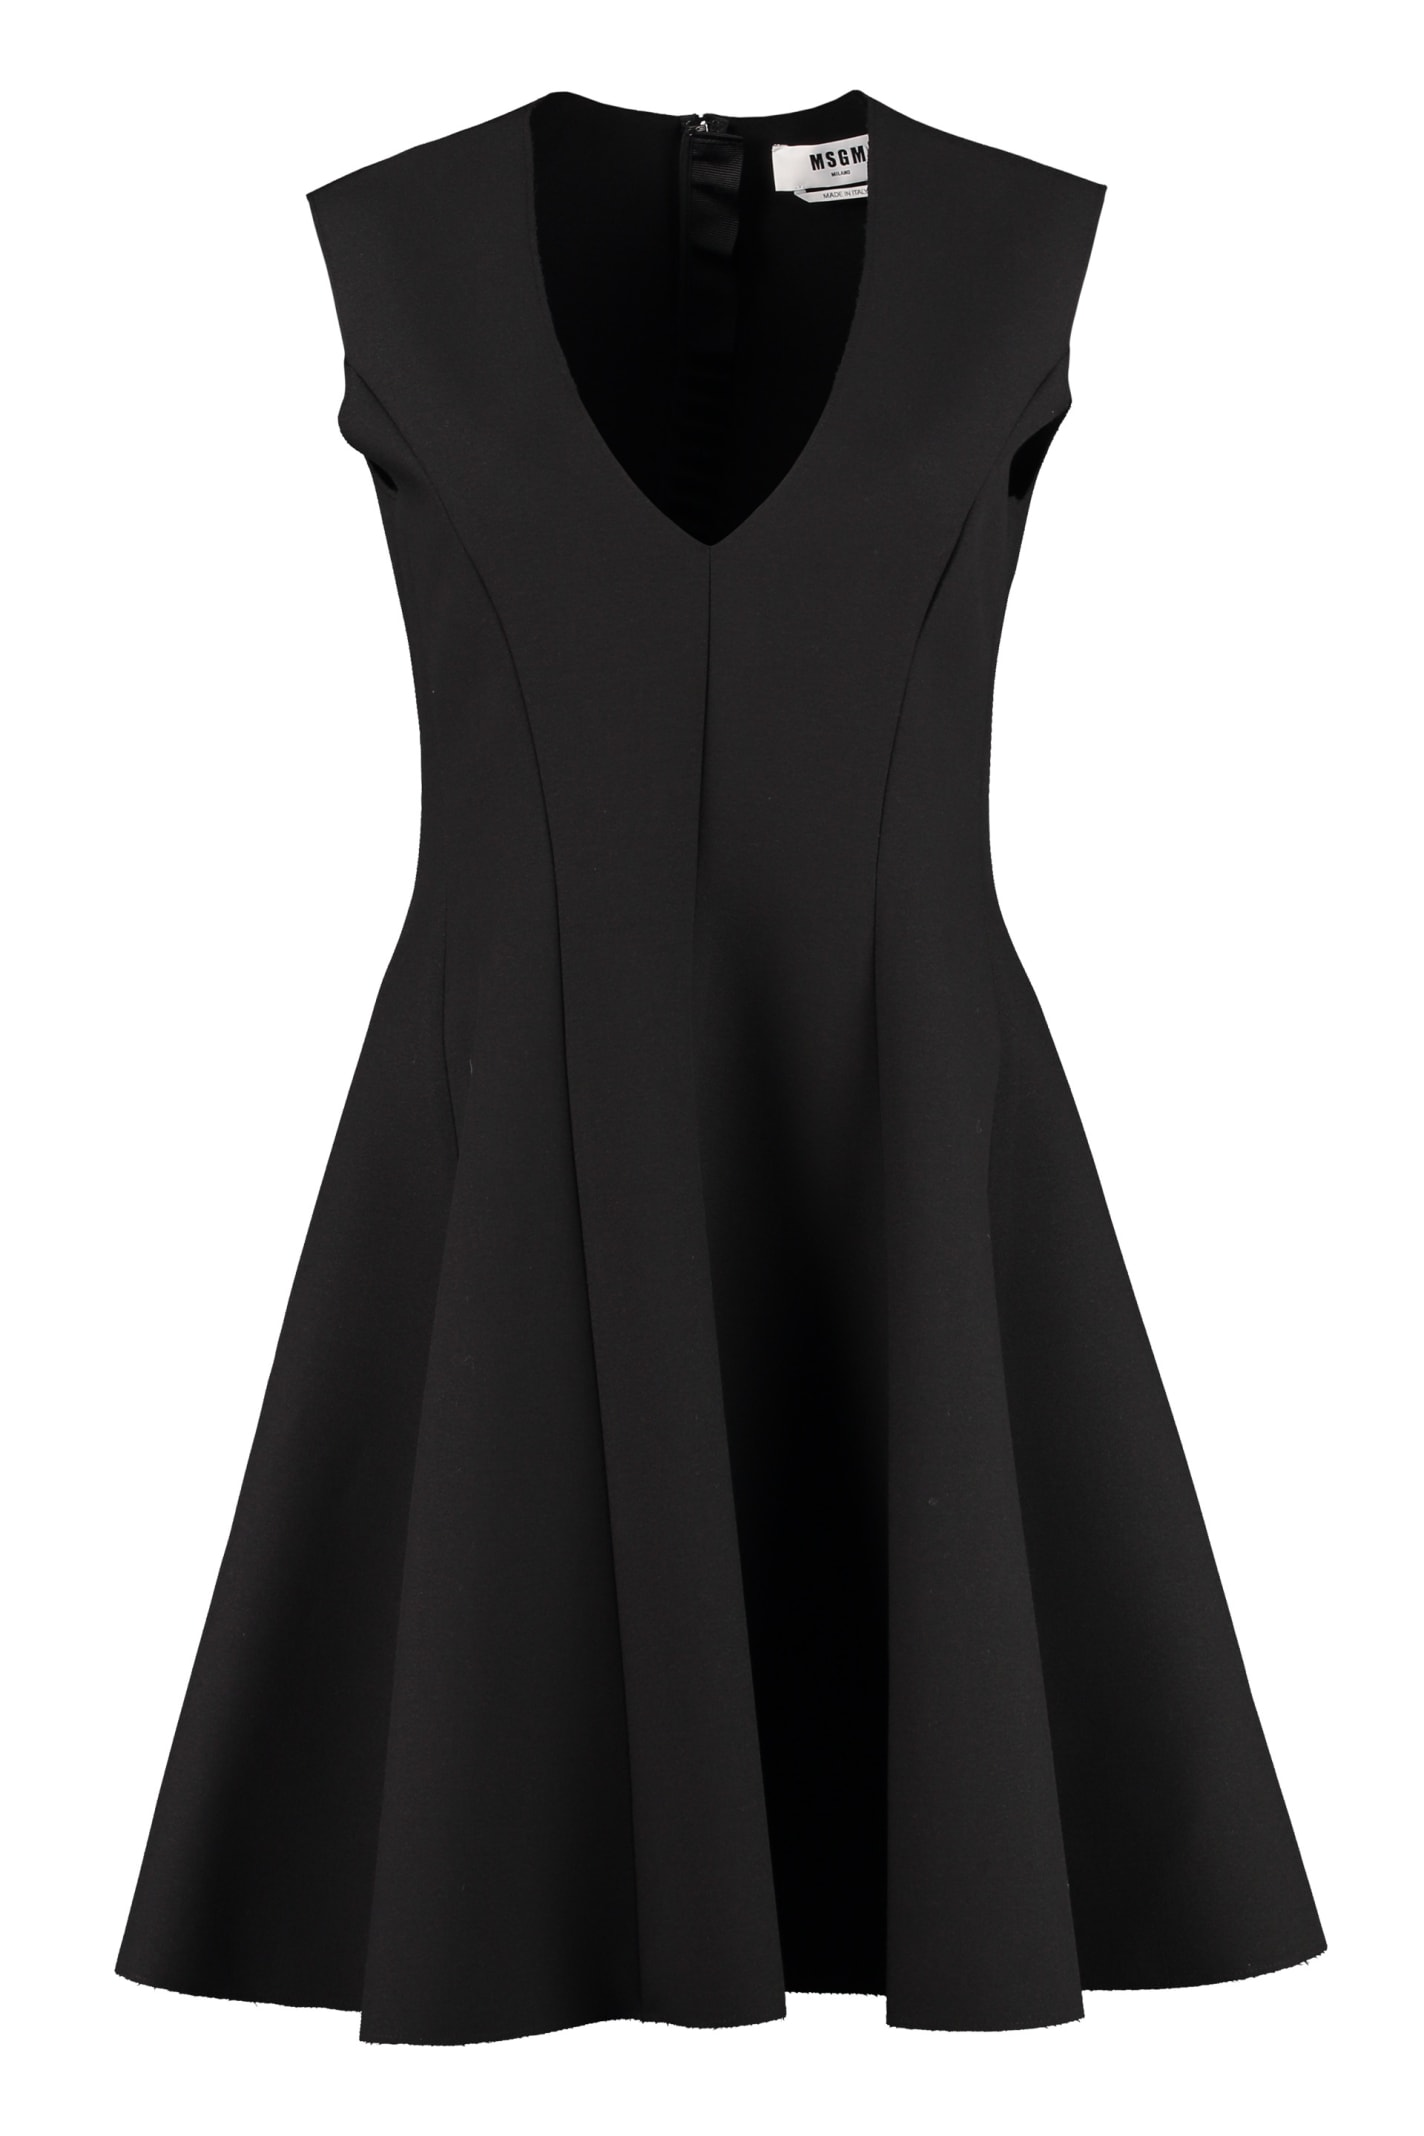 Buy MSGM Cady Dress online, shop MSGM with free shipping